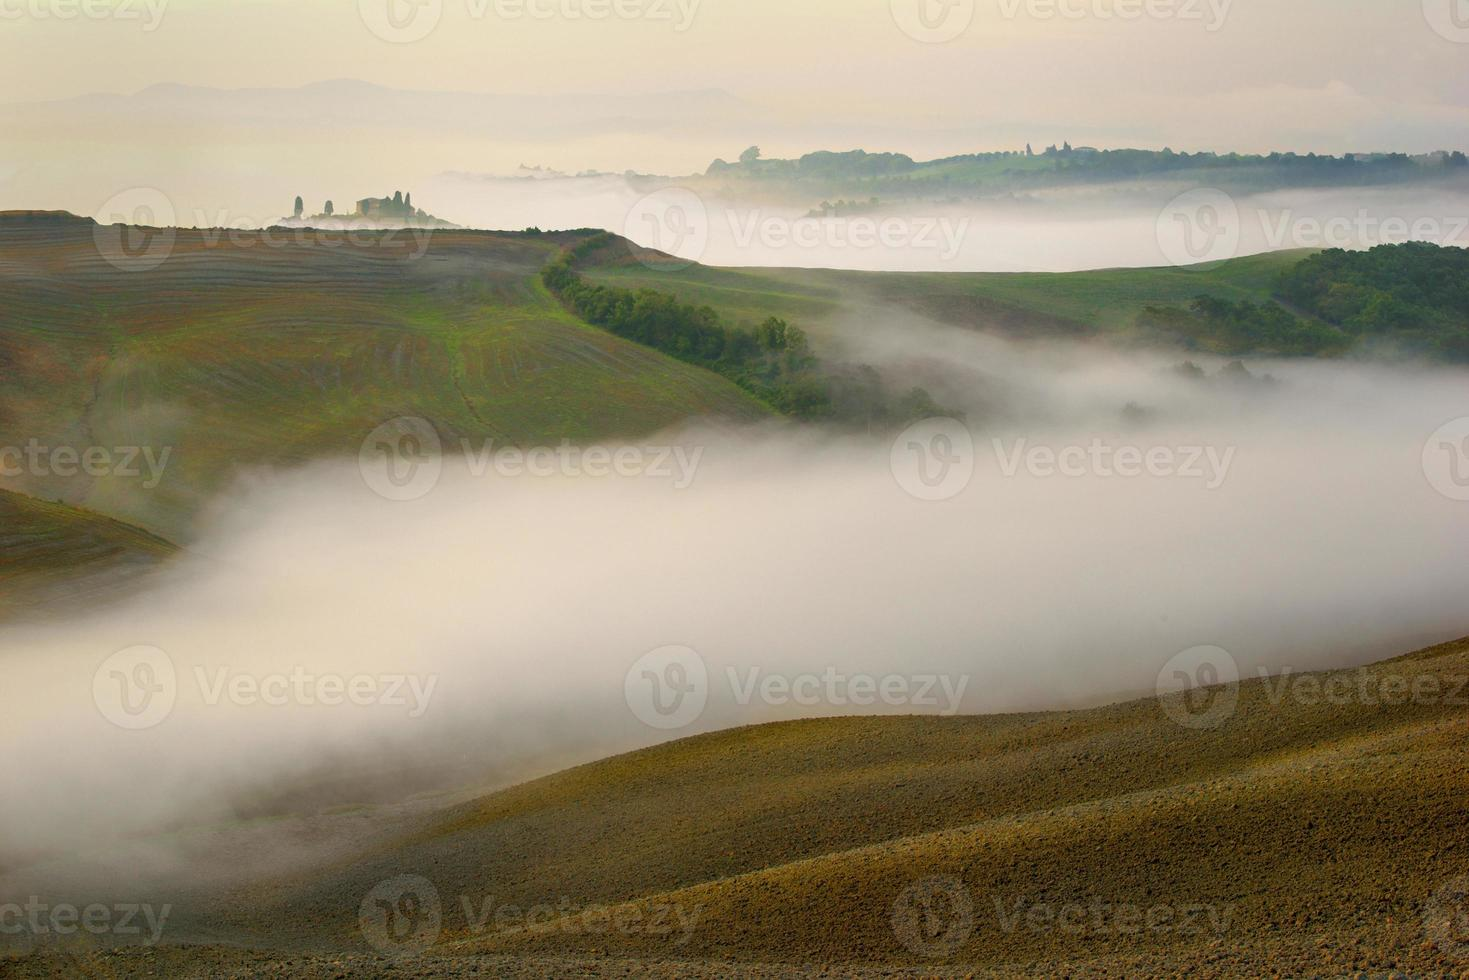 Tuscany - Landscape panorama, hills and meadow, photo